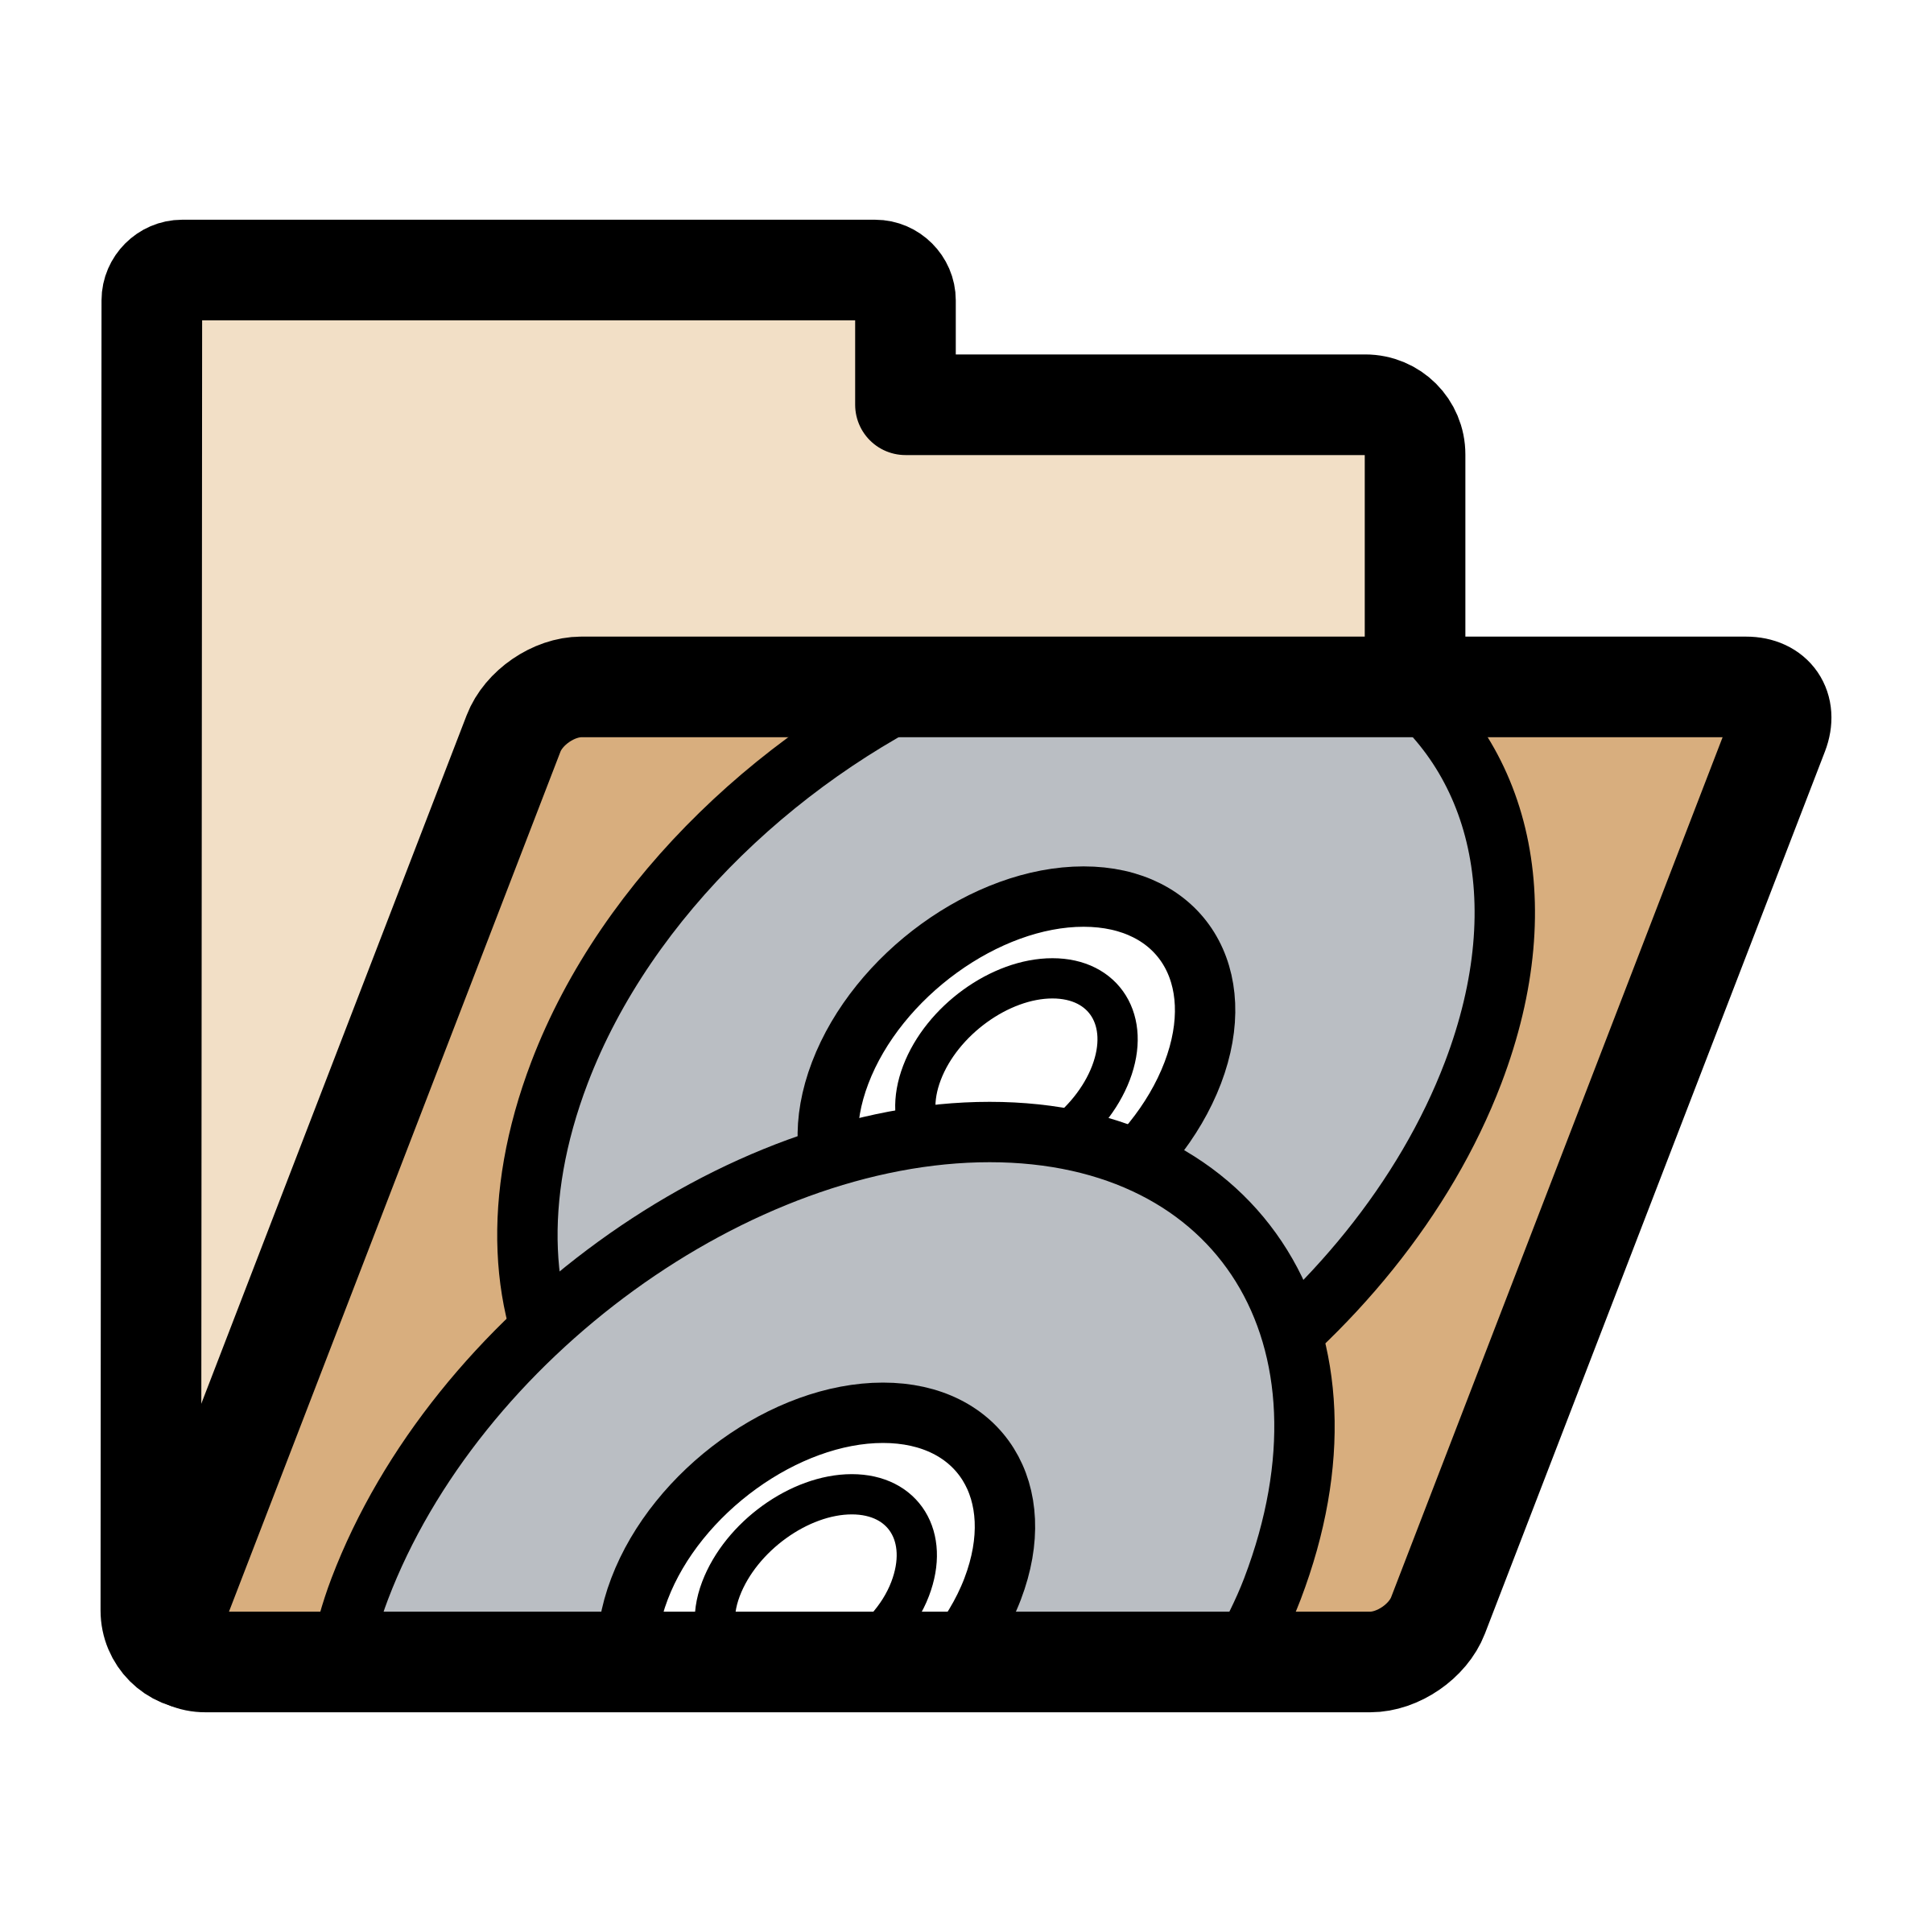 Primary cd icons png. Folder clipart file system